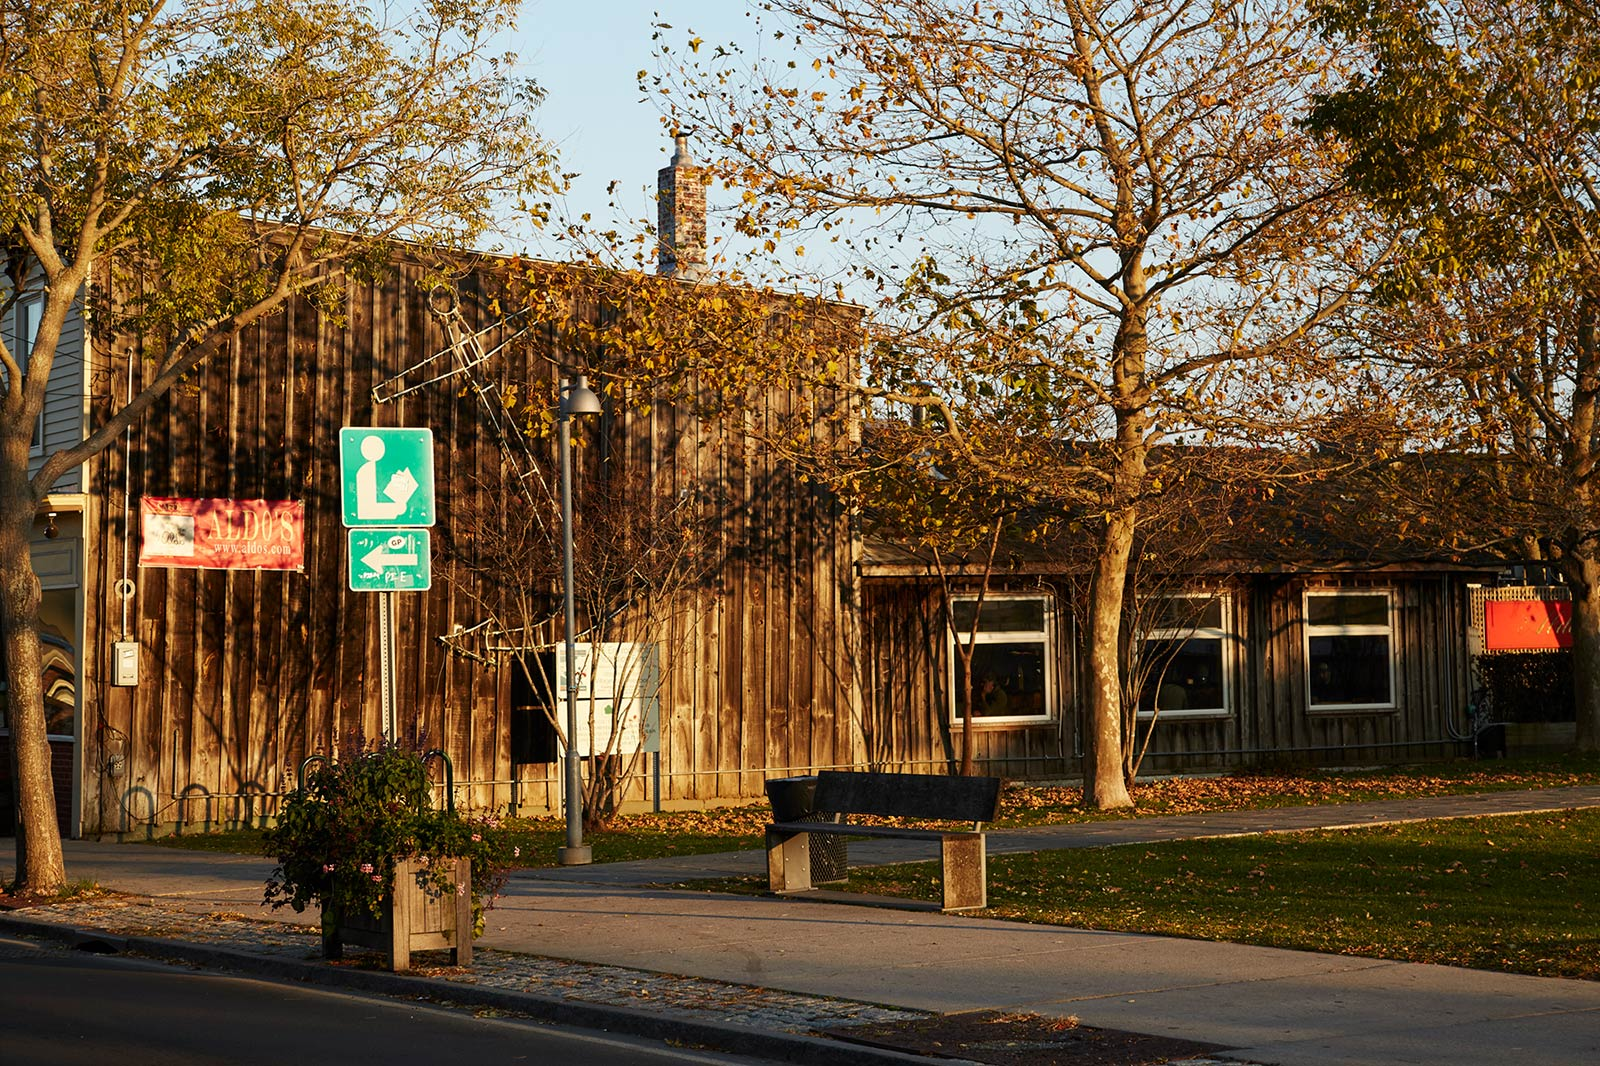 Greenport village rusted building